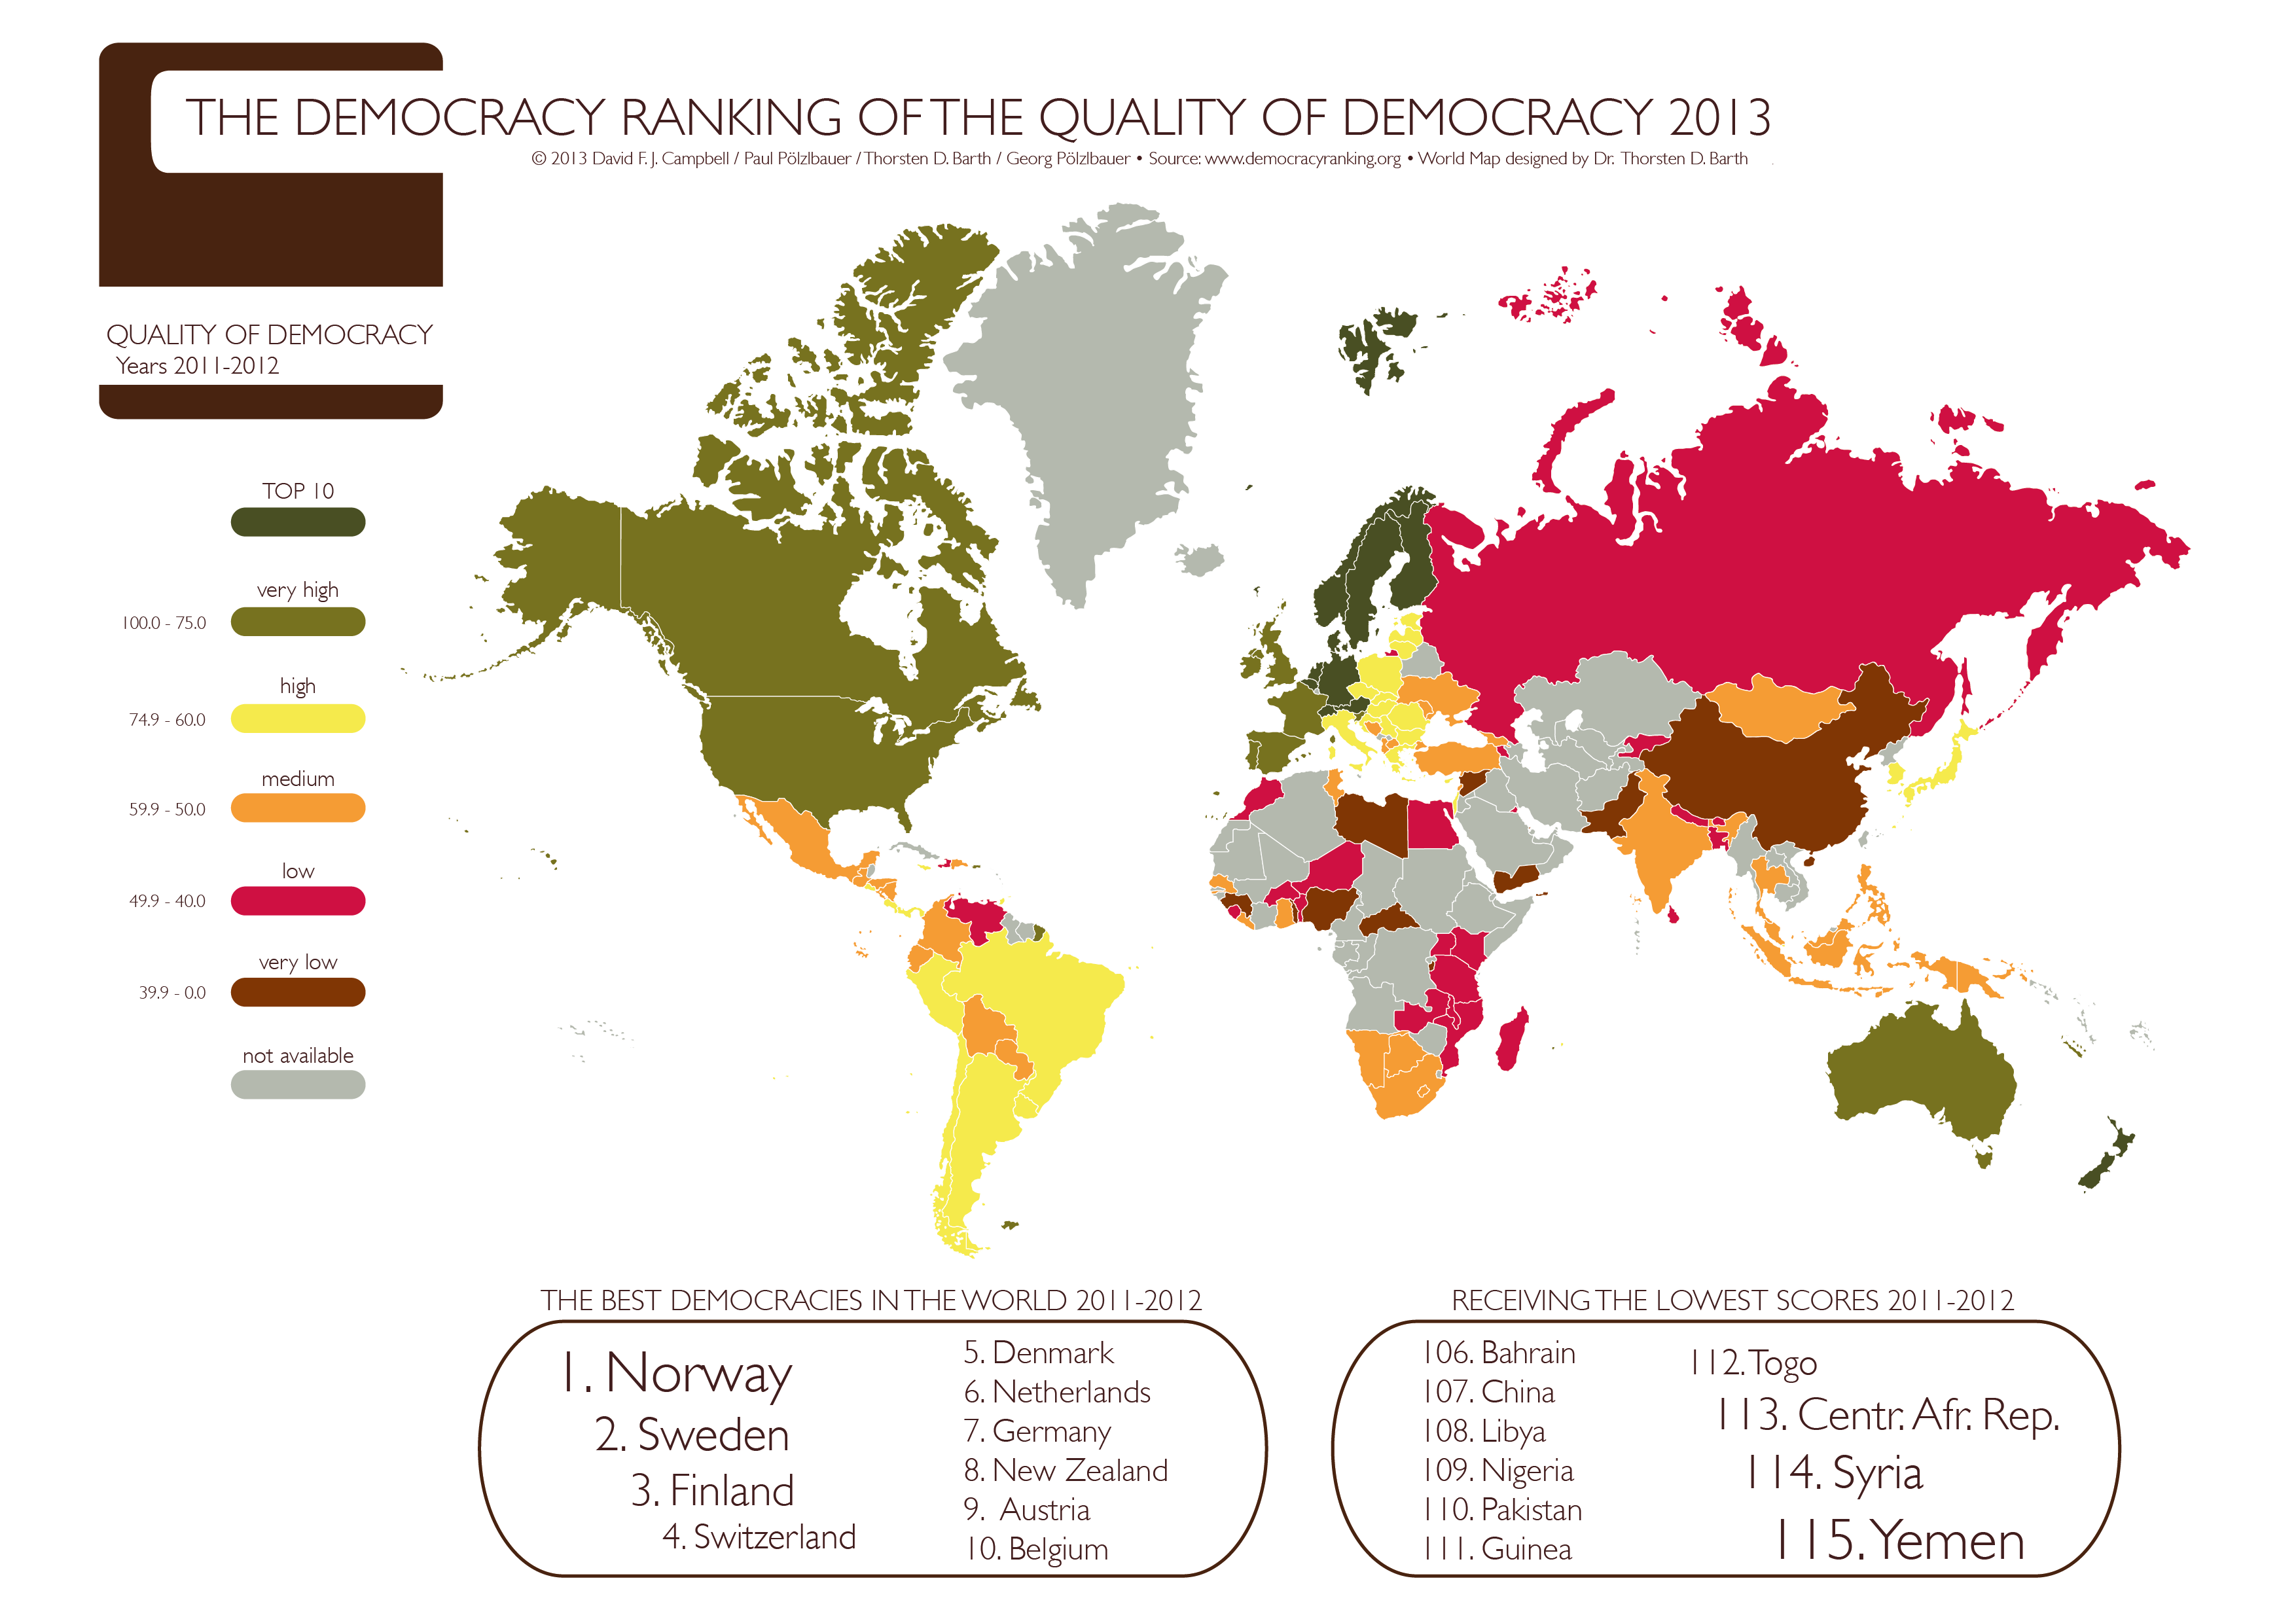 Democratic World Map.This Map Shows The Results Of The Democracy Ranking 2013 The